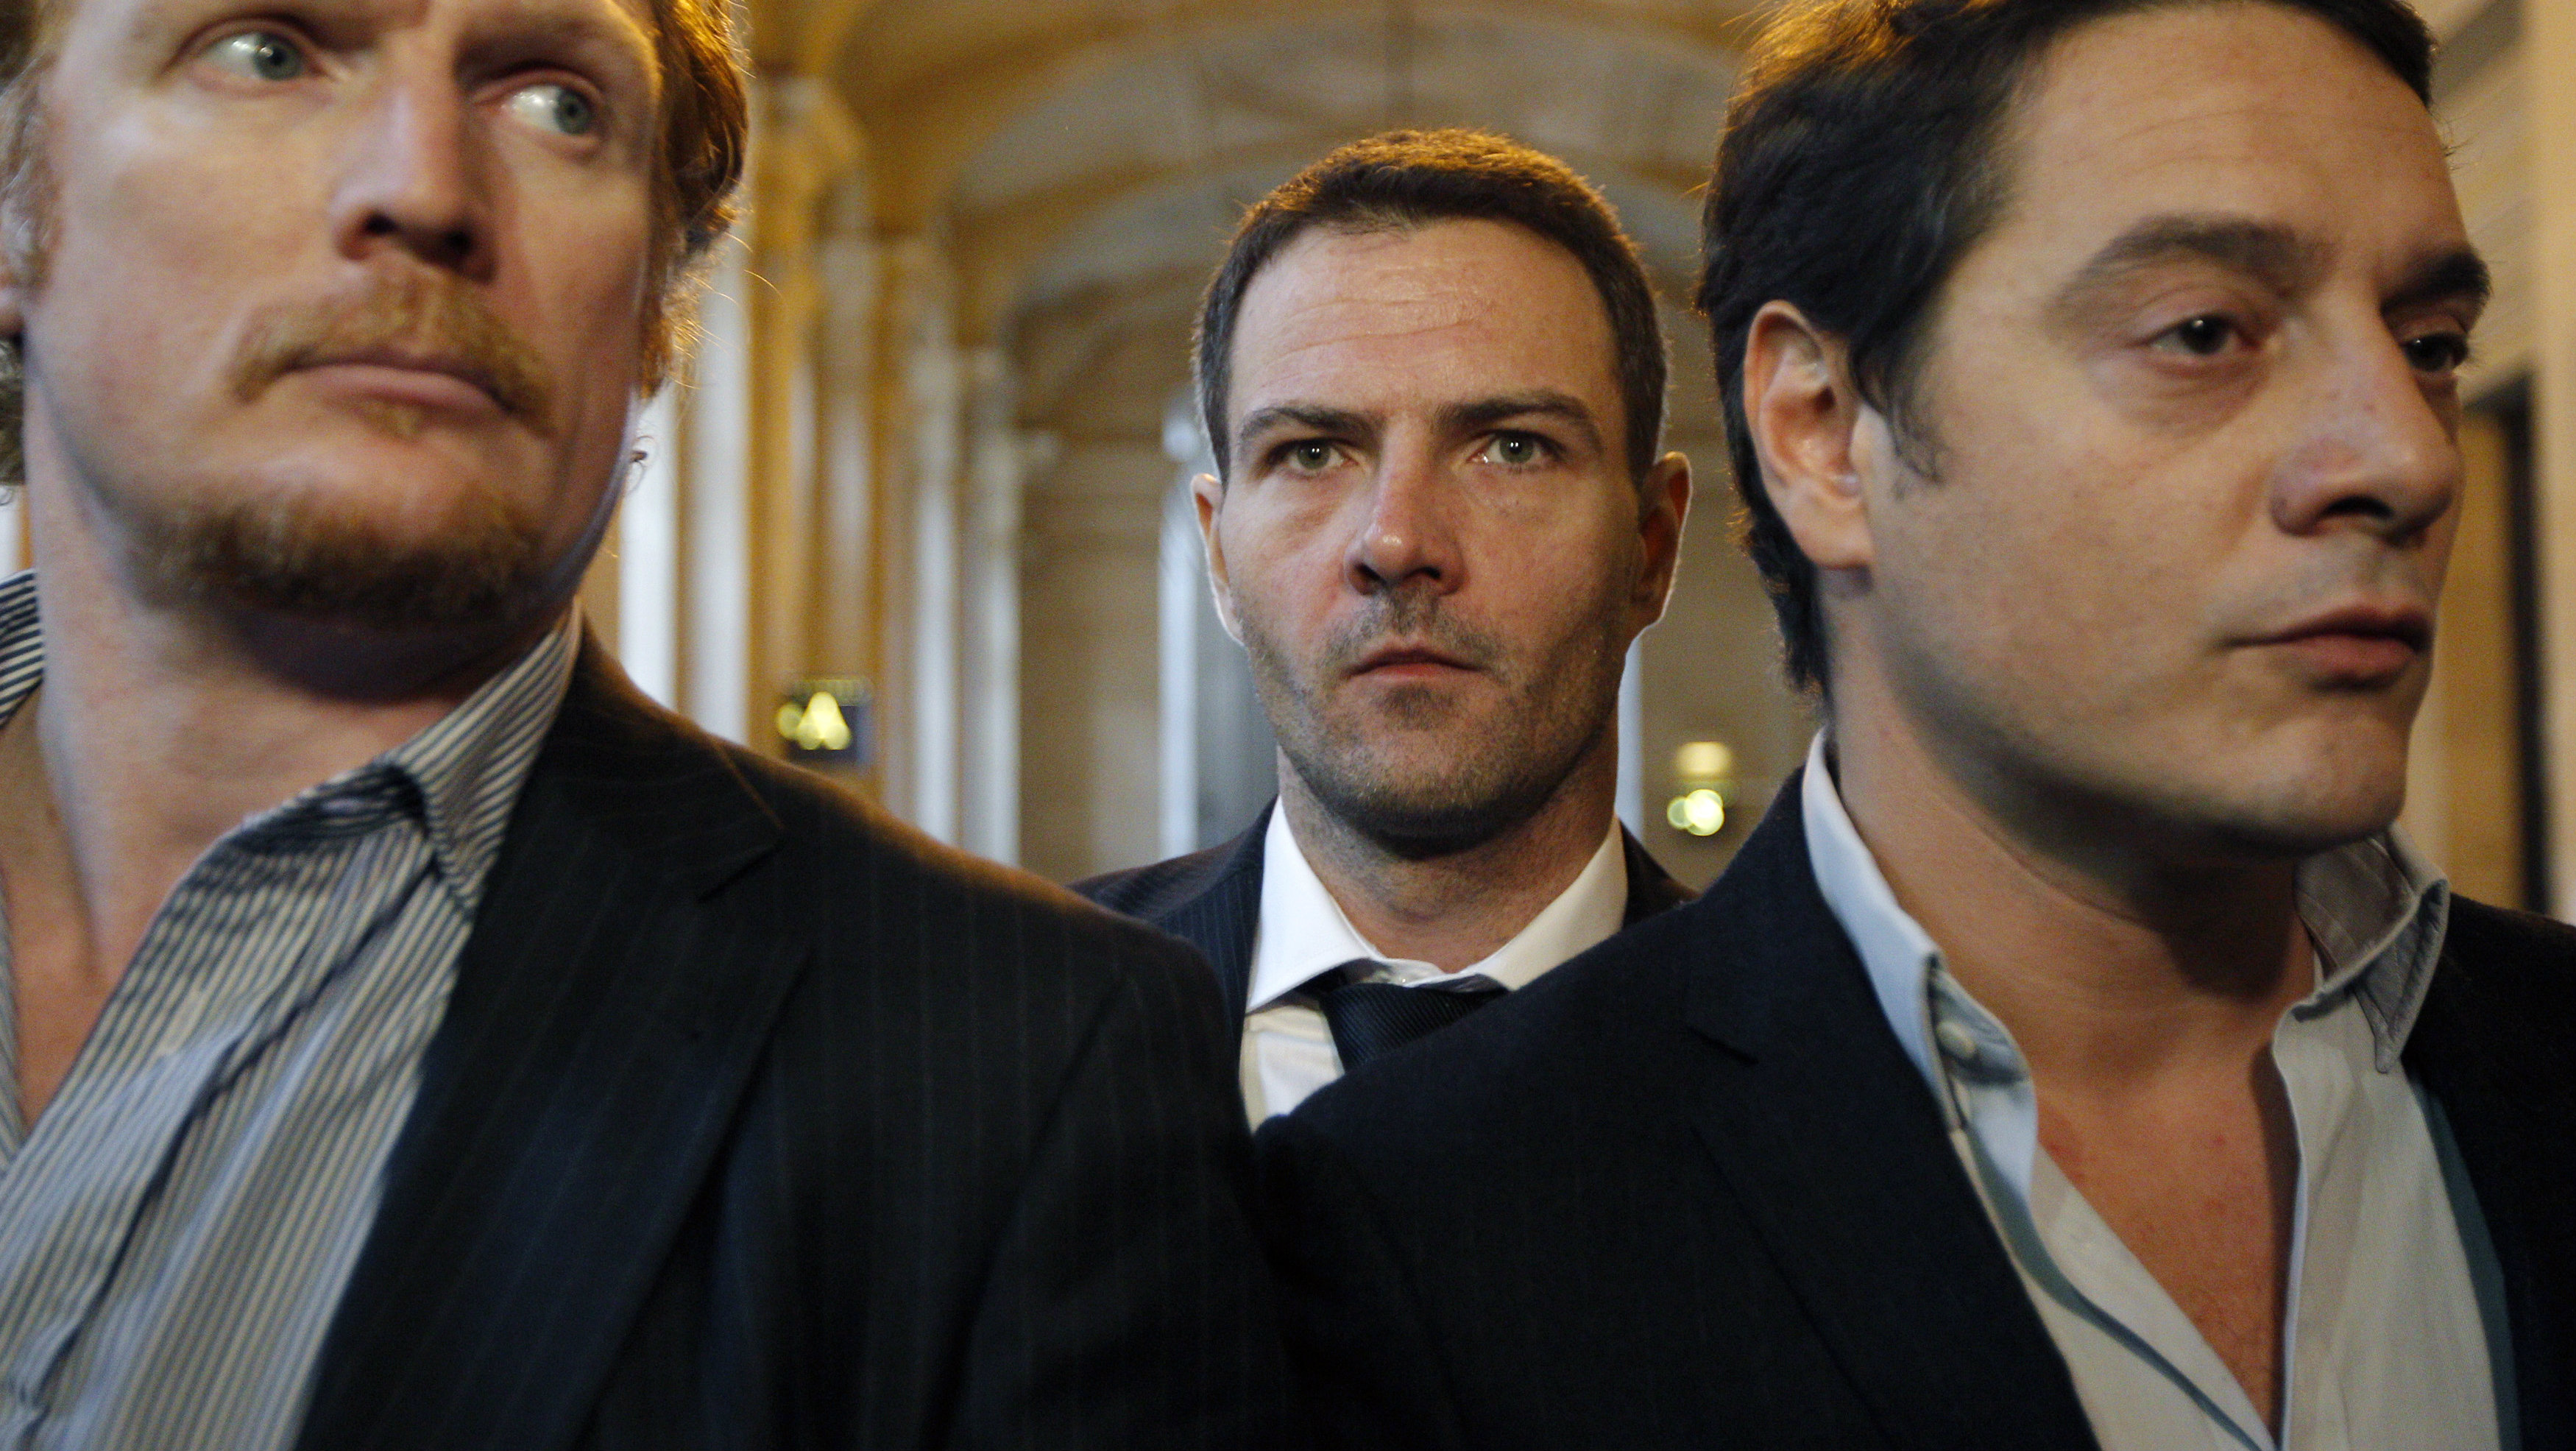 Société Générale trader Jérôme Kerviel was convicted for trading fraud.